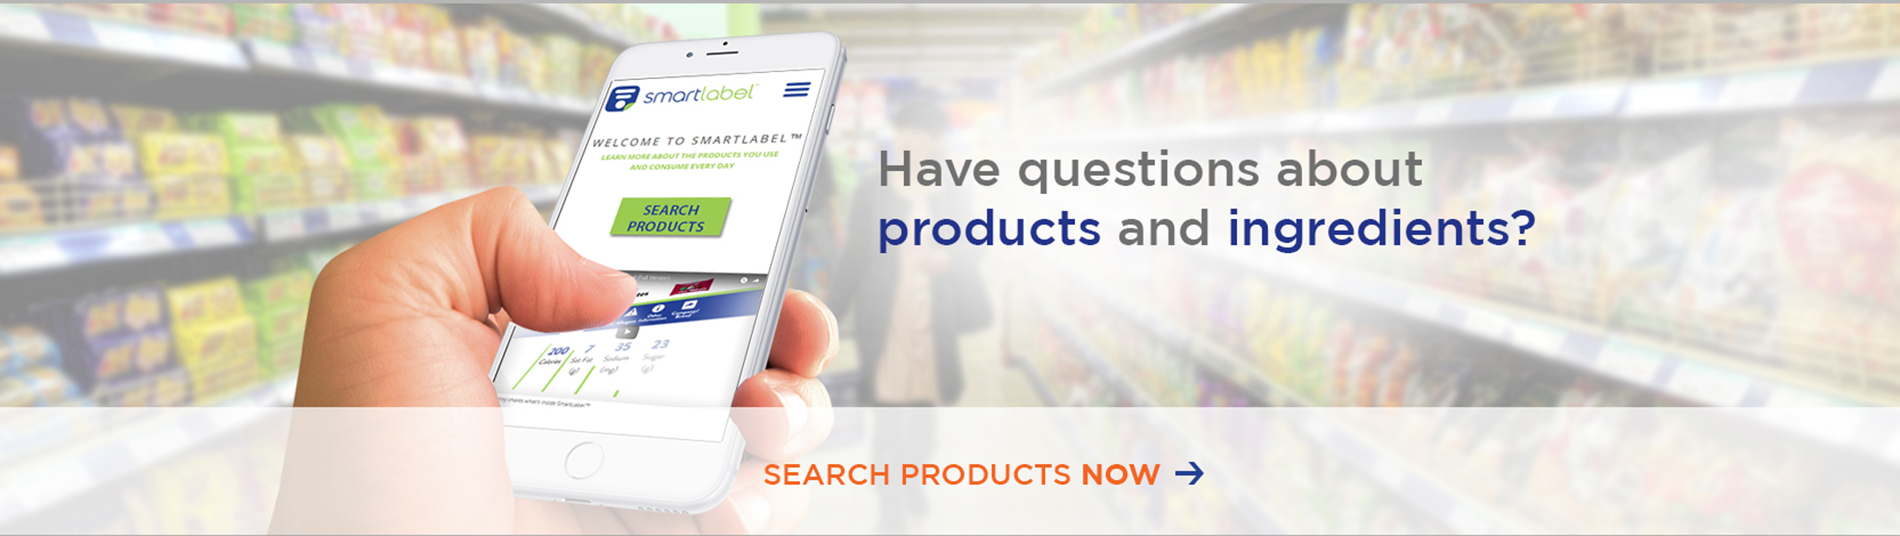 SmartLabel Hero: Questions About Products and Ingredients